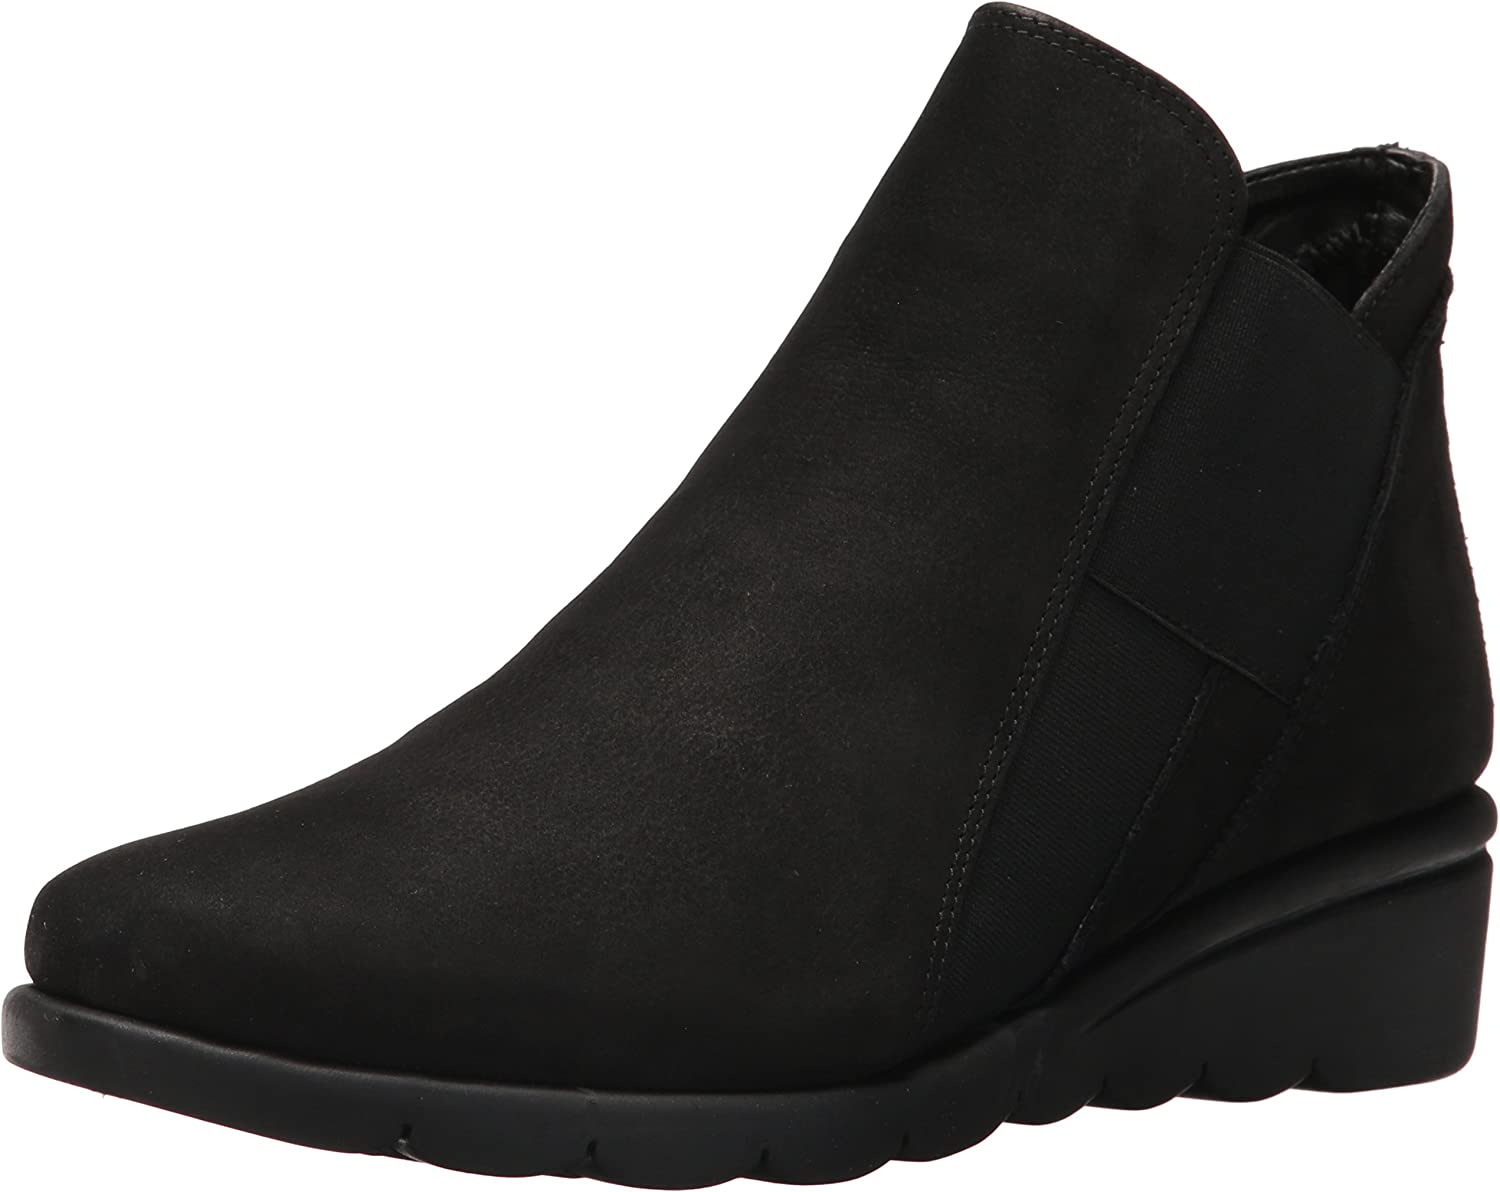 The Flexx Womens Jump Ankle Boot